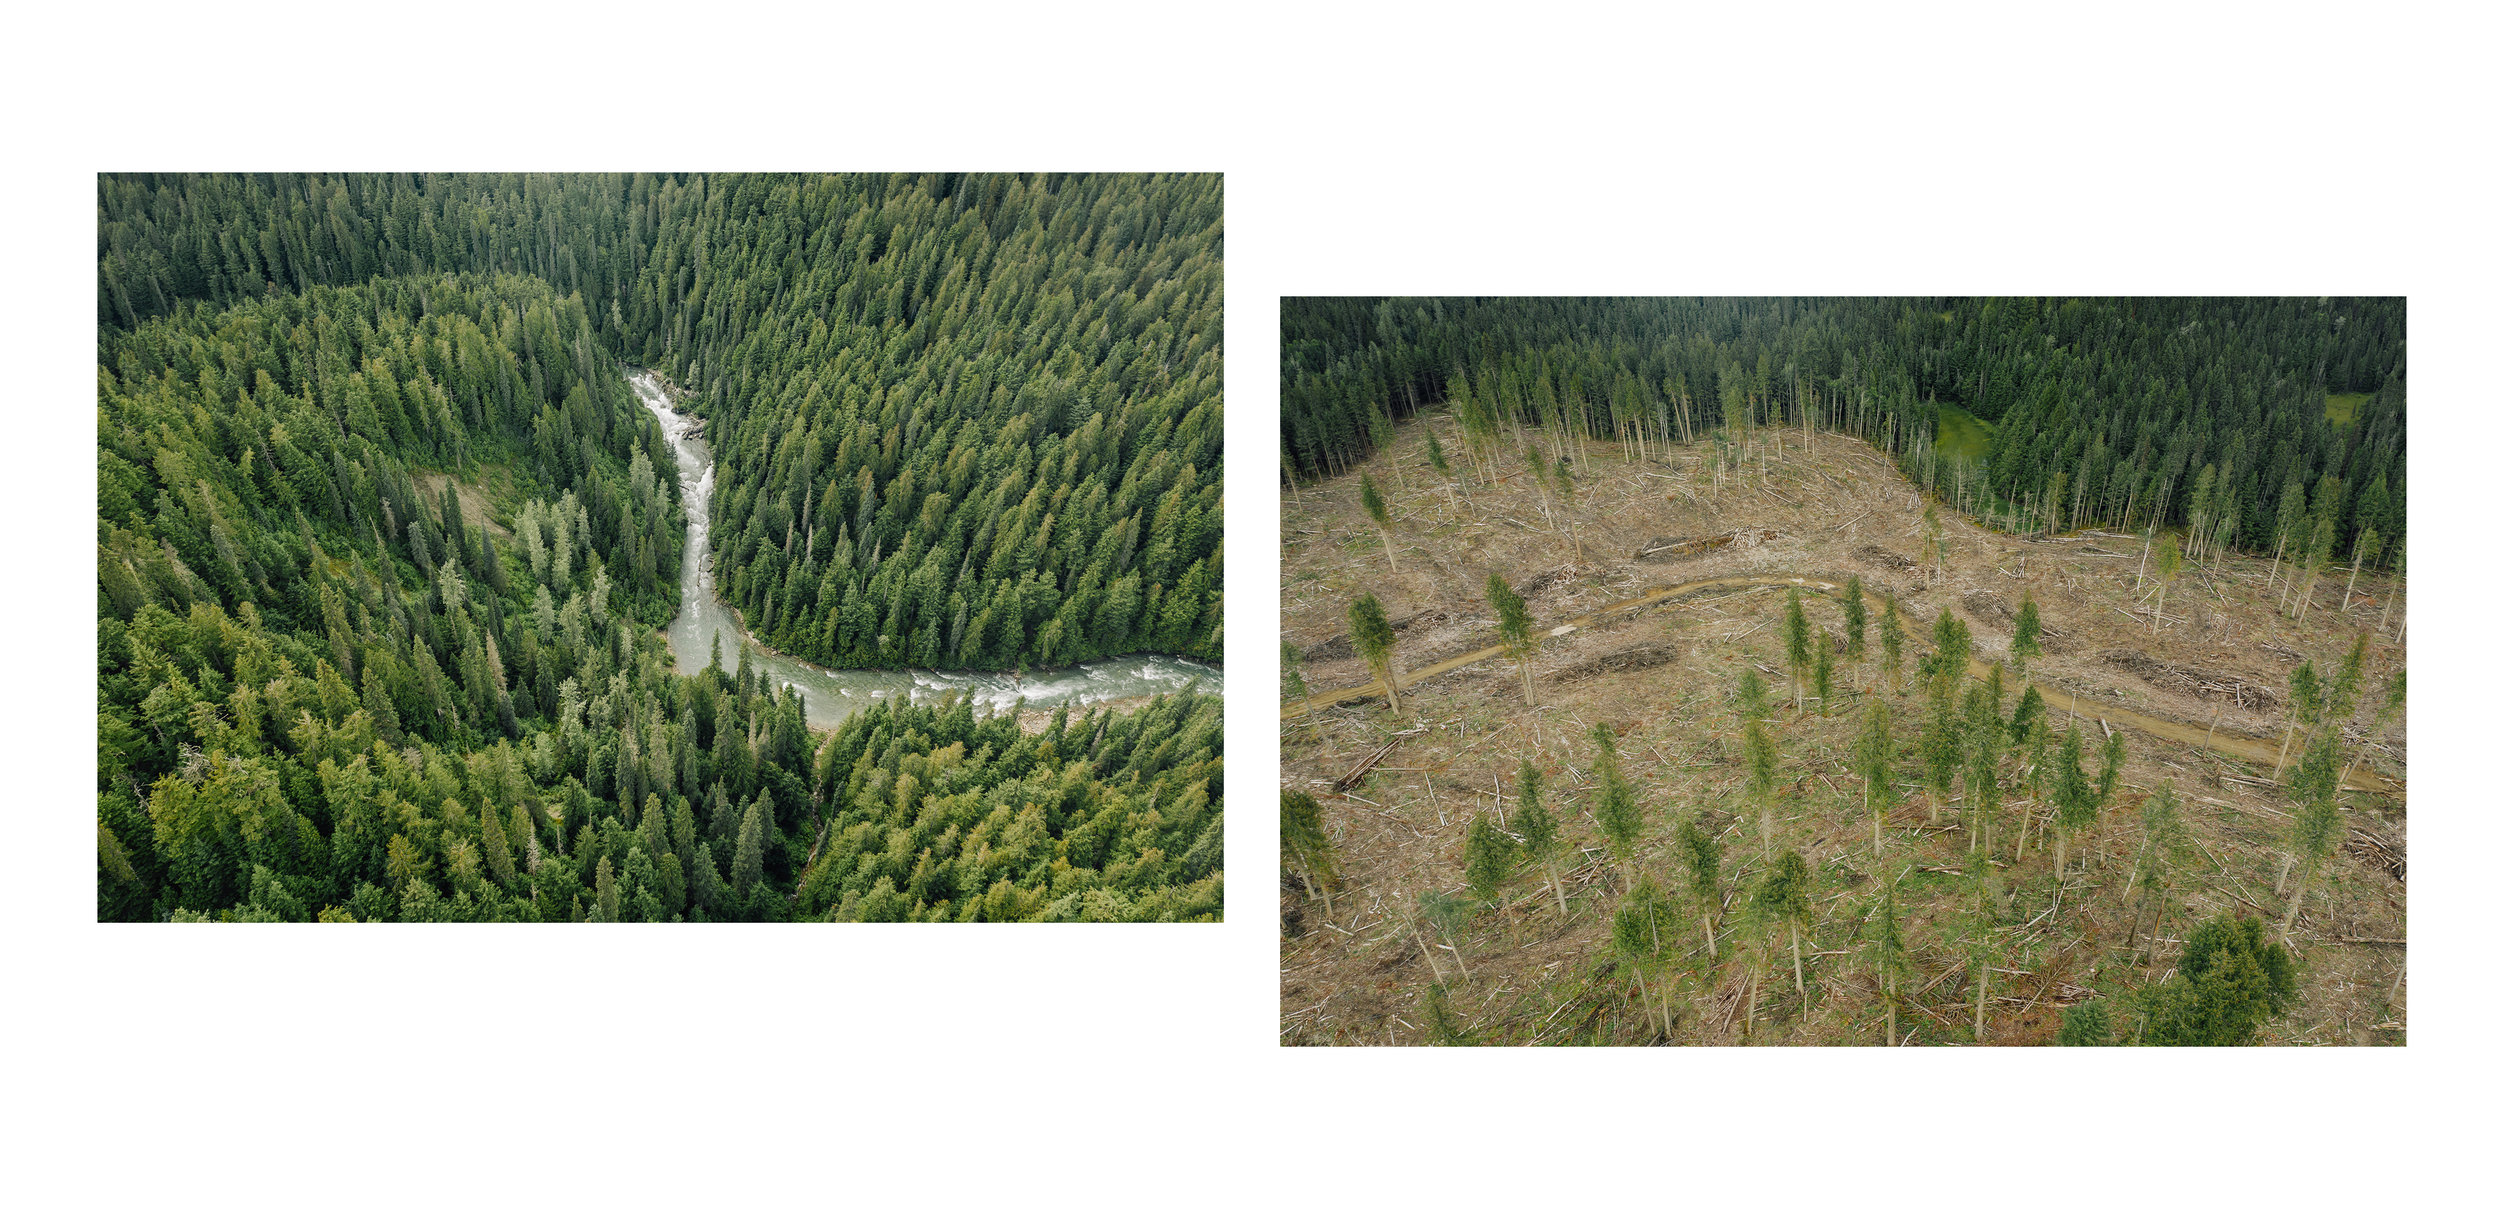 The Goat River valley (left) is one of only a few inland temperate rainforest watersheds that haven't been logged. Next to a clear cut near Hwy 16 West of Prince George BC